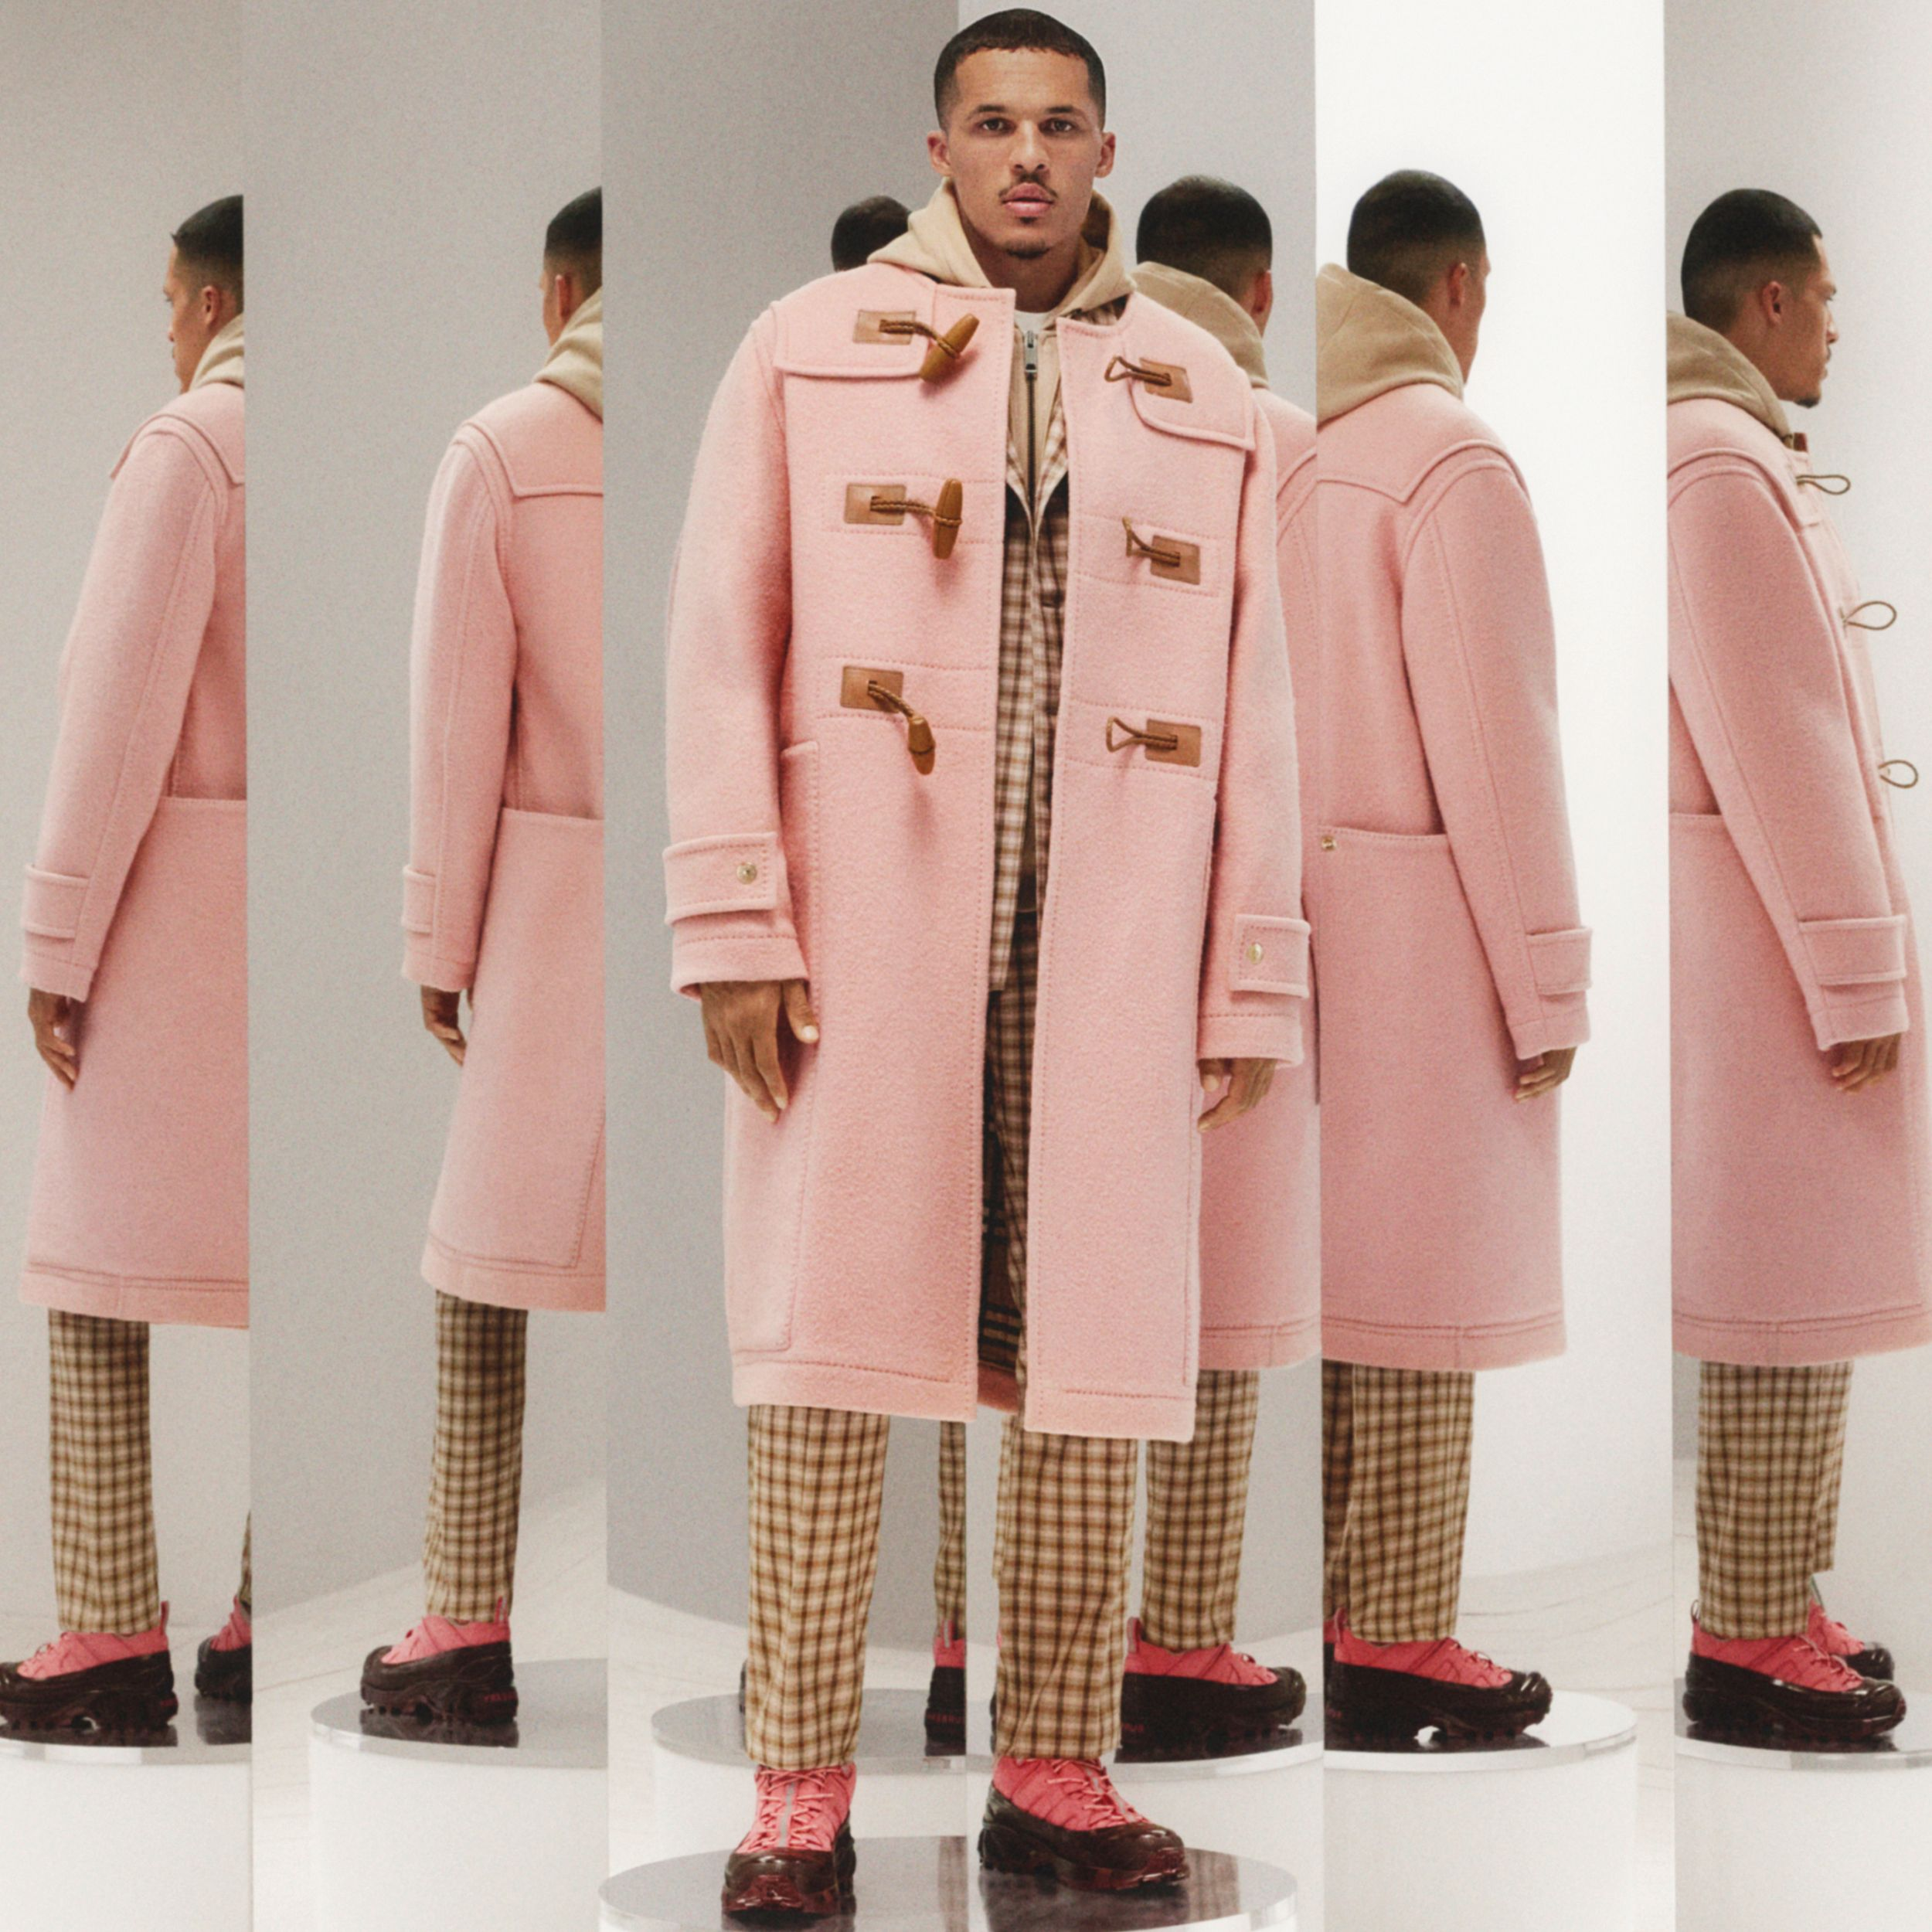 Vintage Check-lined Felted Wool Duffle Coat in Dusty Pink - Men | Burberry United Kingdom - 2